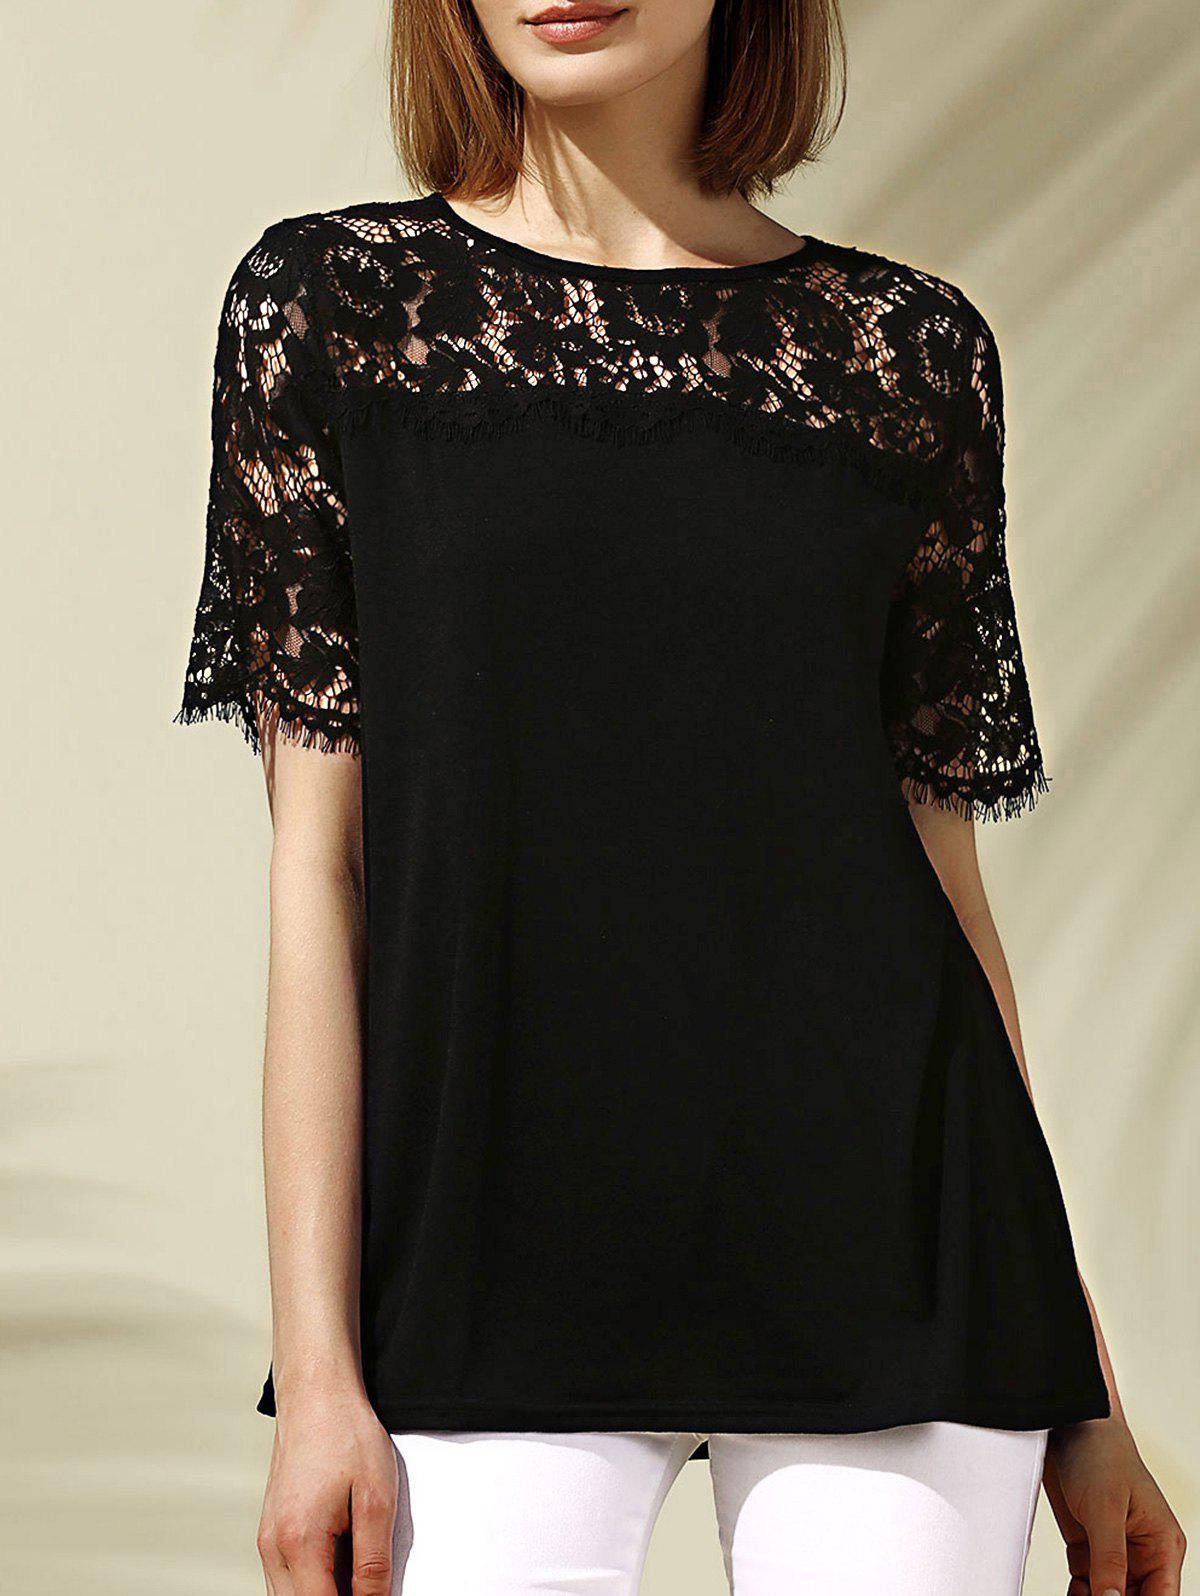 Sweet Women's Round Neck Short Sleeve Lace Spliced Hollow Out T-Shirt - BLACK S